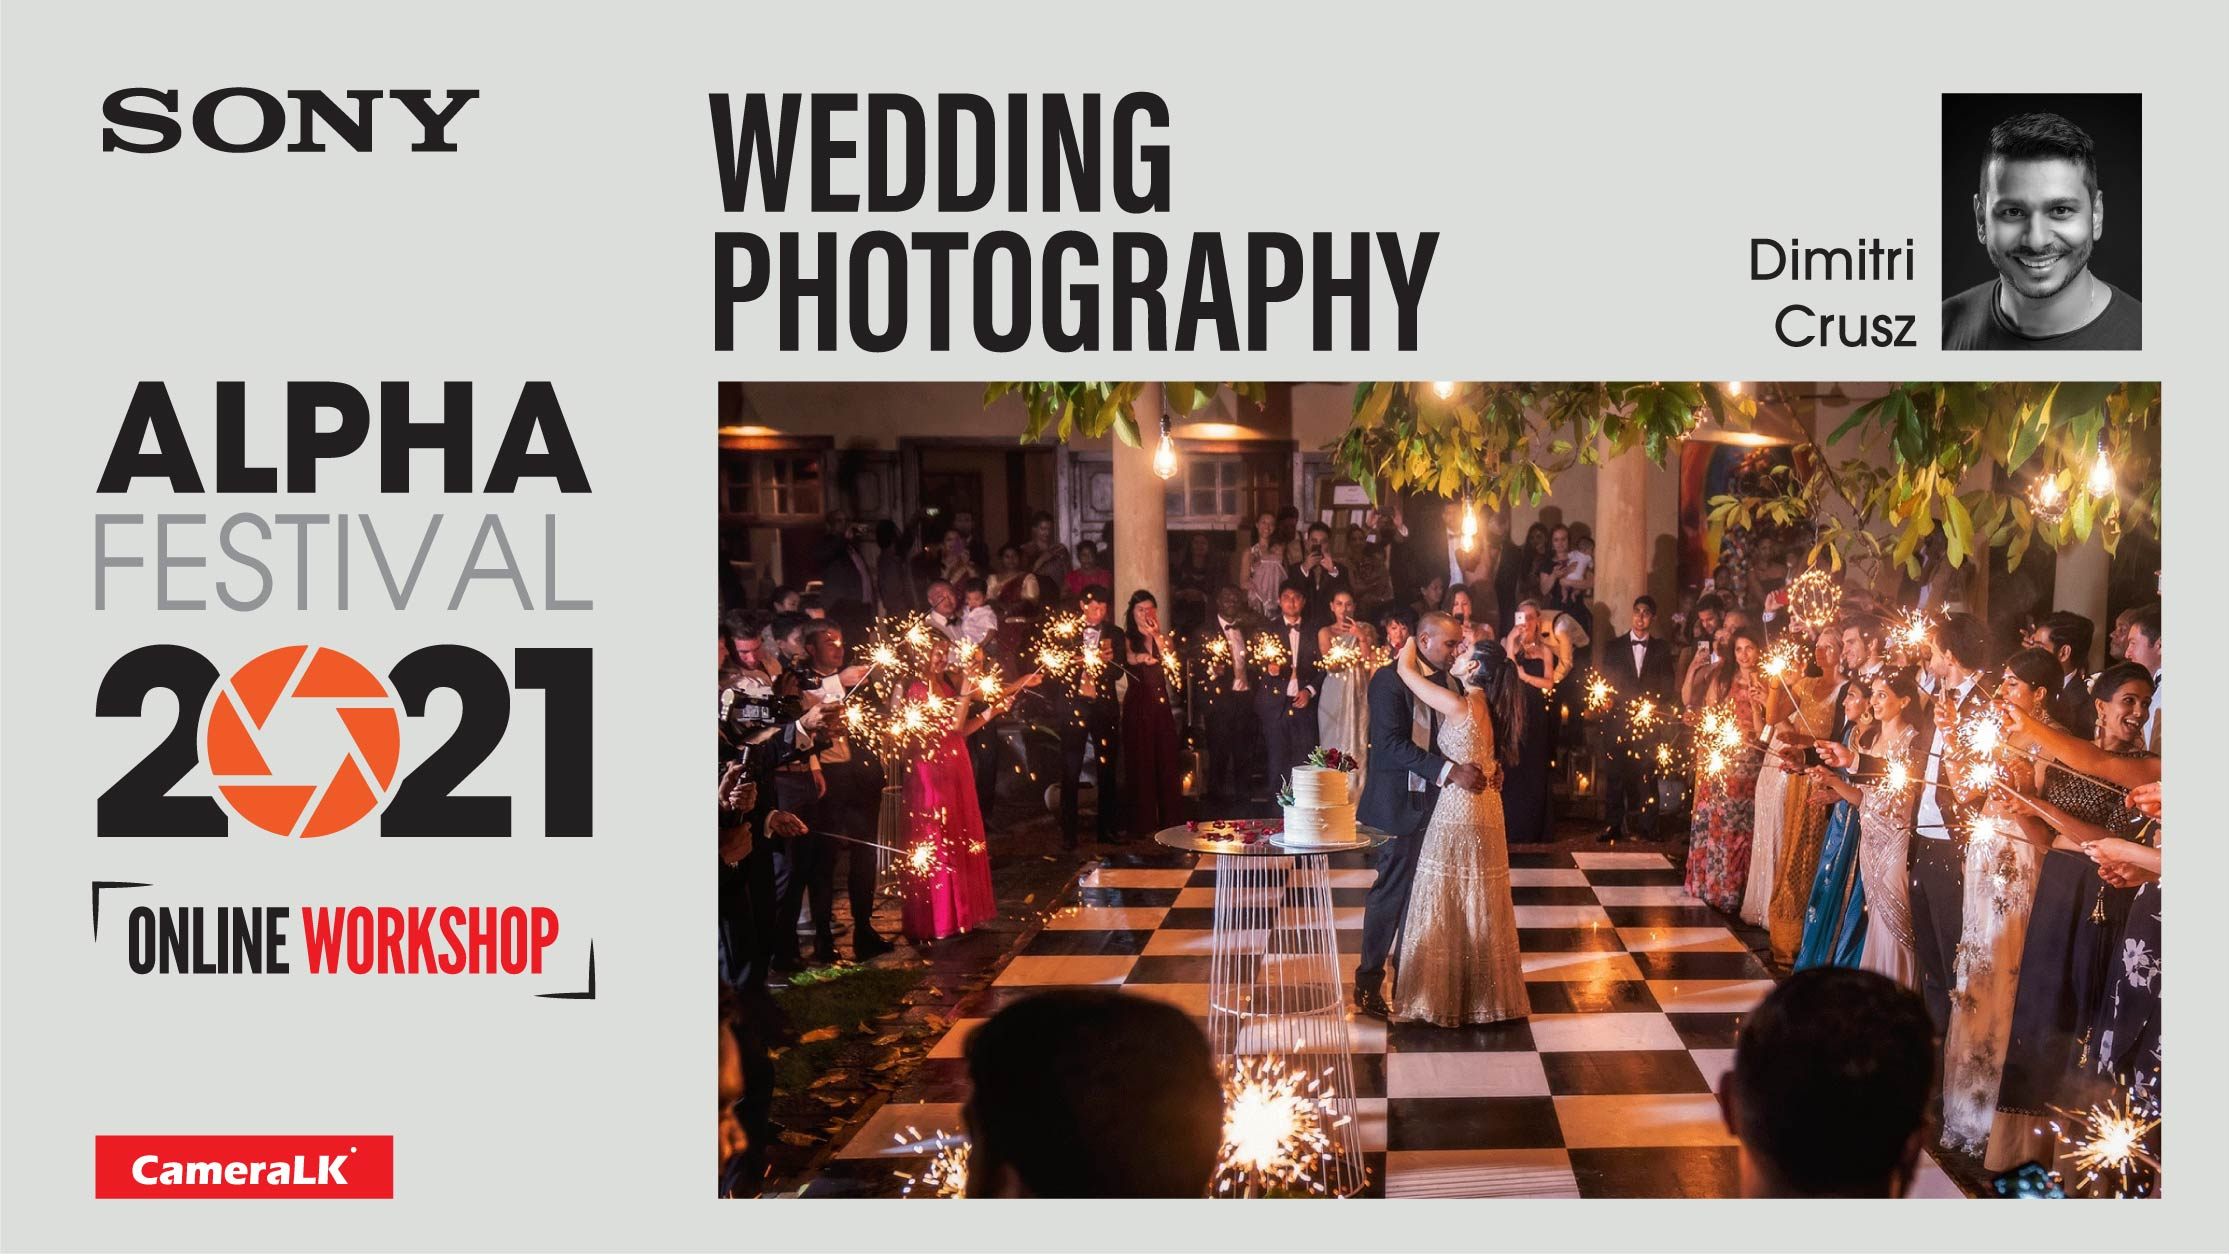 Wedding Photography Workshop By Dimitri Crusz